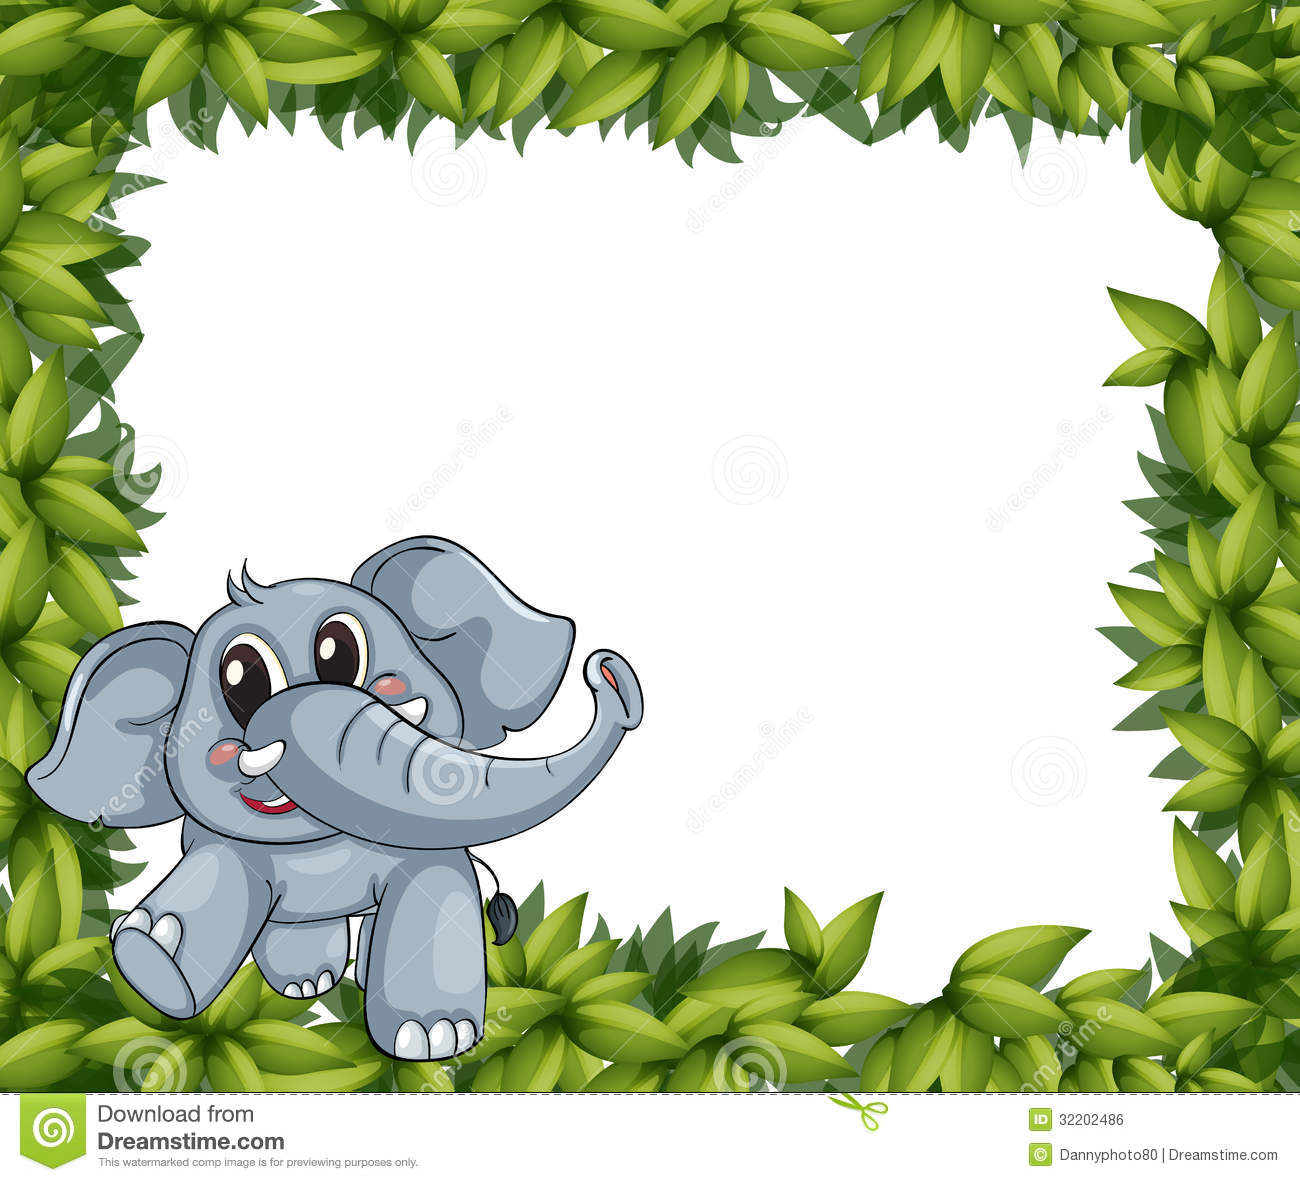 A Smiling Elephant And Plant Frame Stock Vector - Illustration of ...